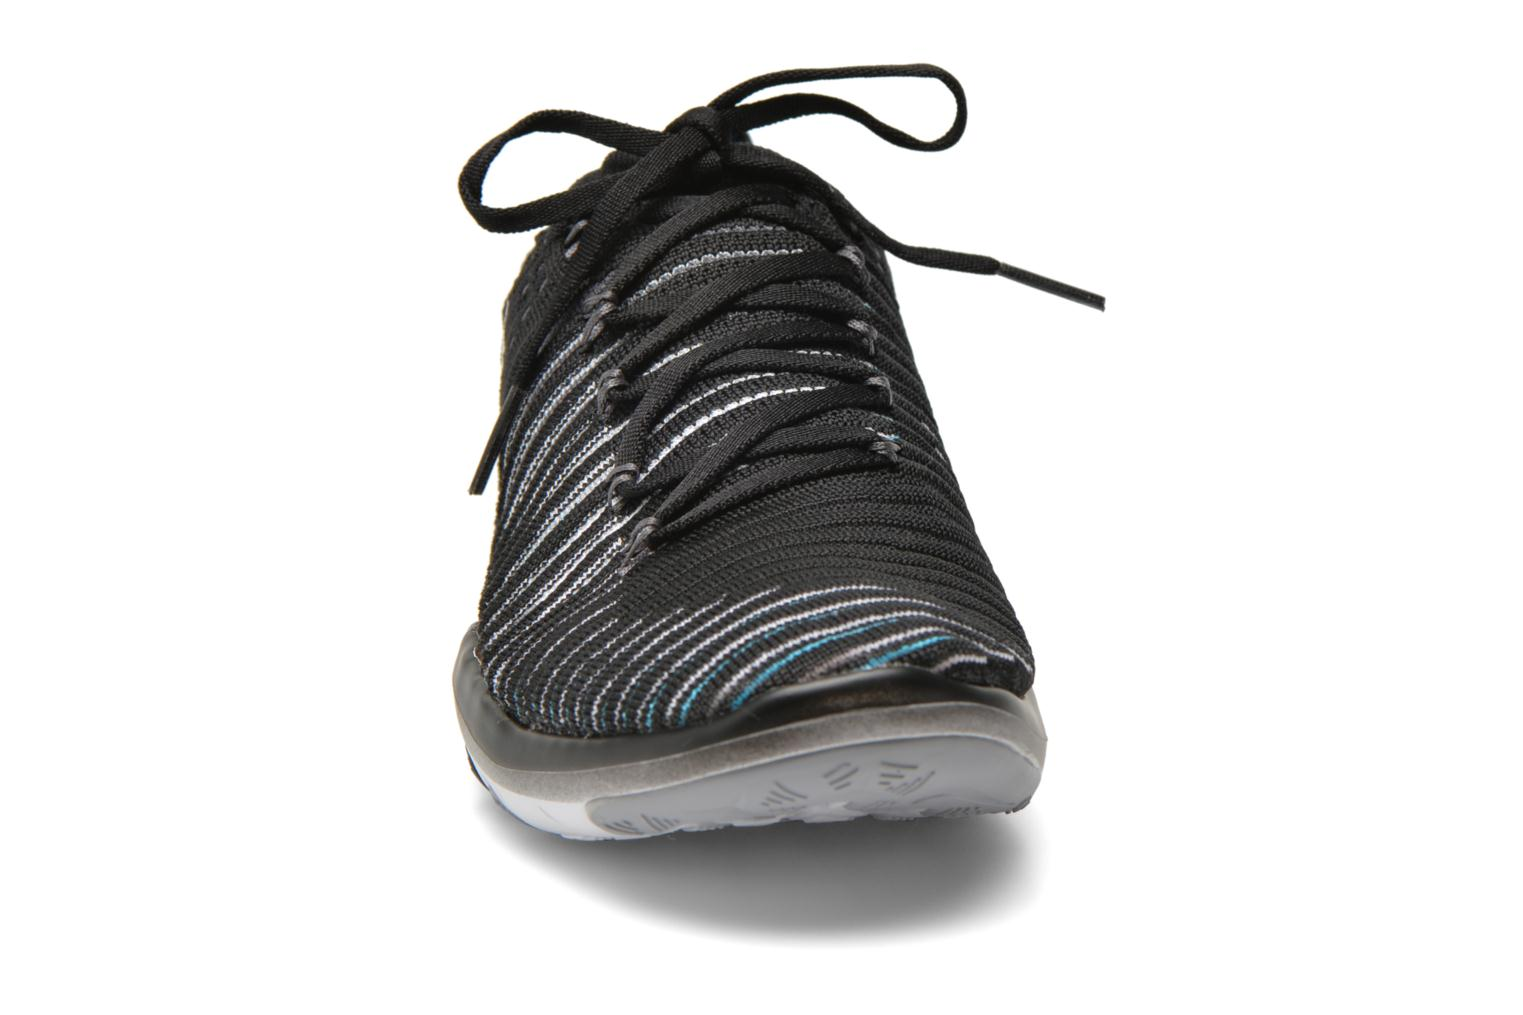 Wm Nike Free Transform Flyknit Black/White-Wolf Grey-Drk Grey